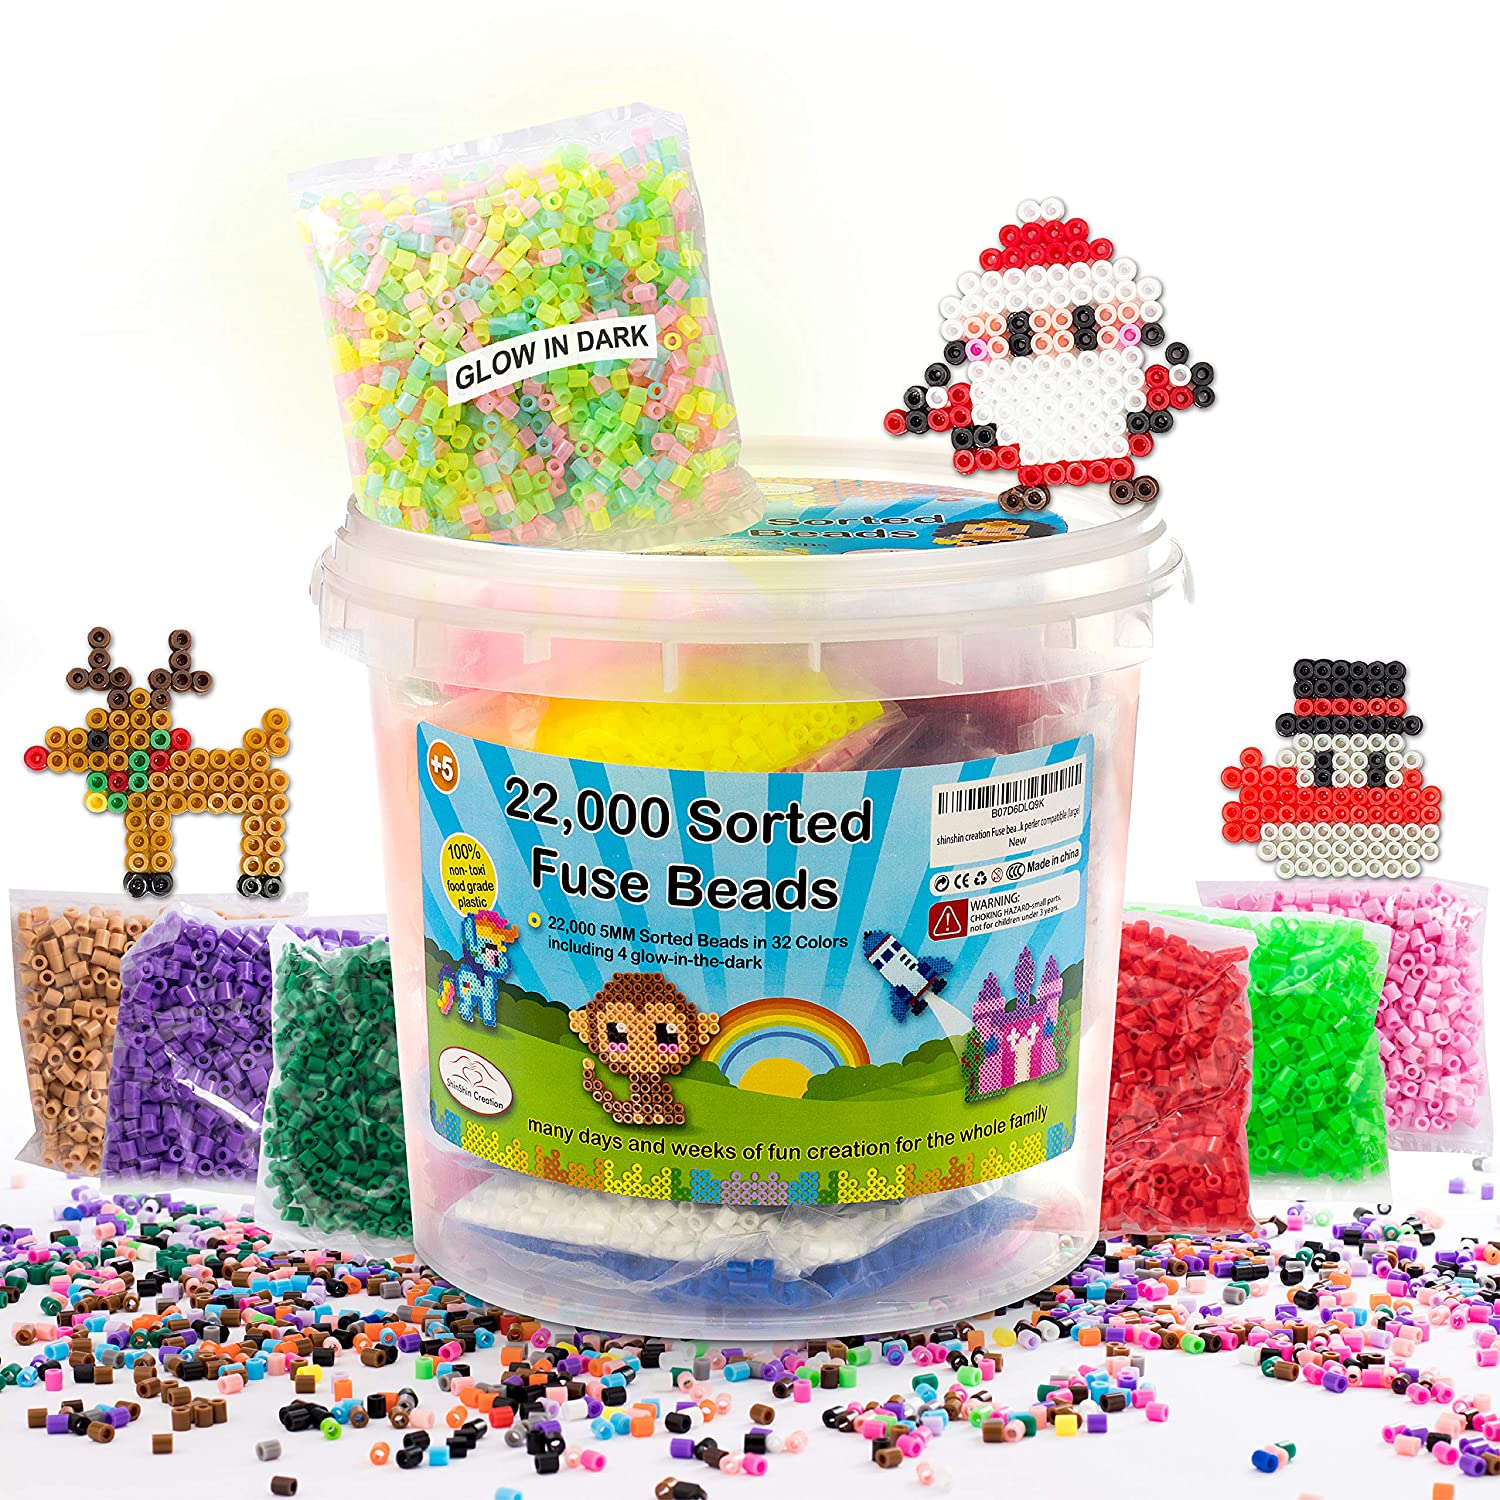 shinshin creation 22 000 Pre Sorted Fuse Beads Bucket Size 5mm 32 Colors Including Glow in The Dark Perler Compatible